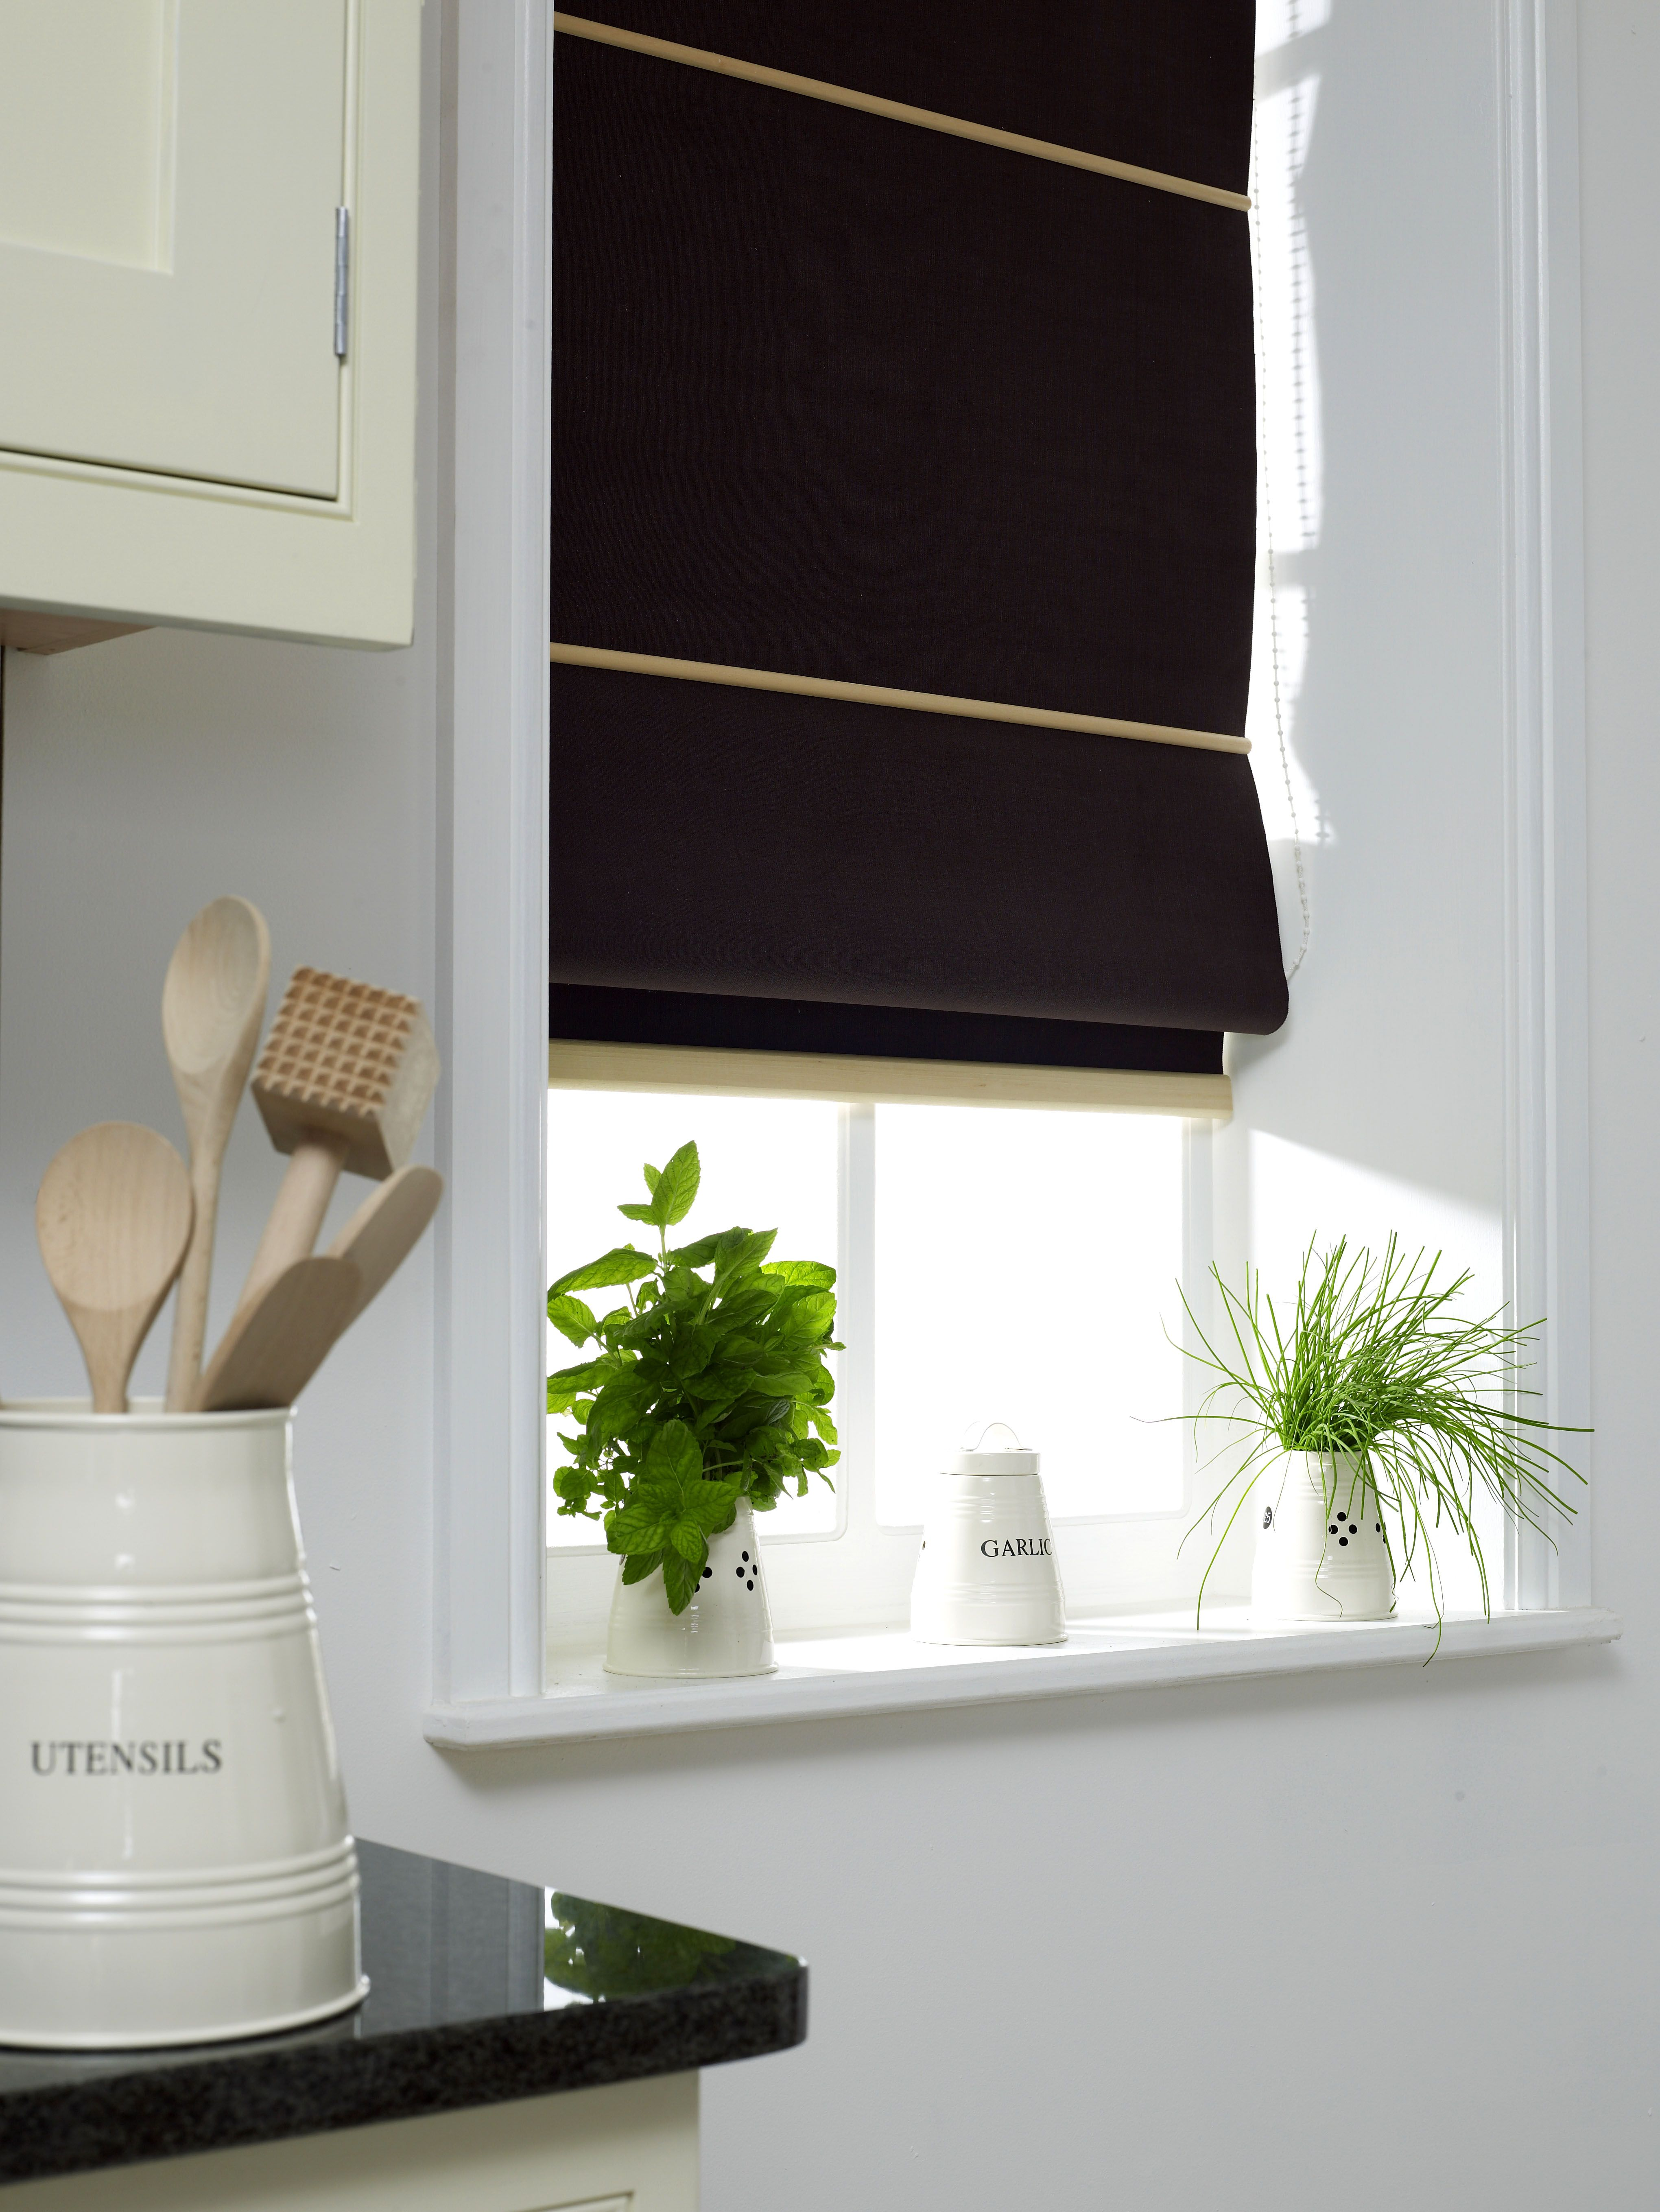 Calico Roman Blind From Apollo Blinds